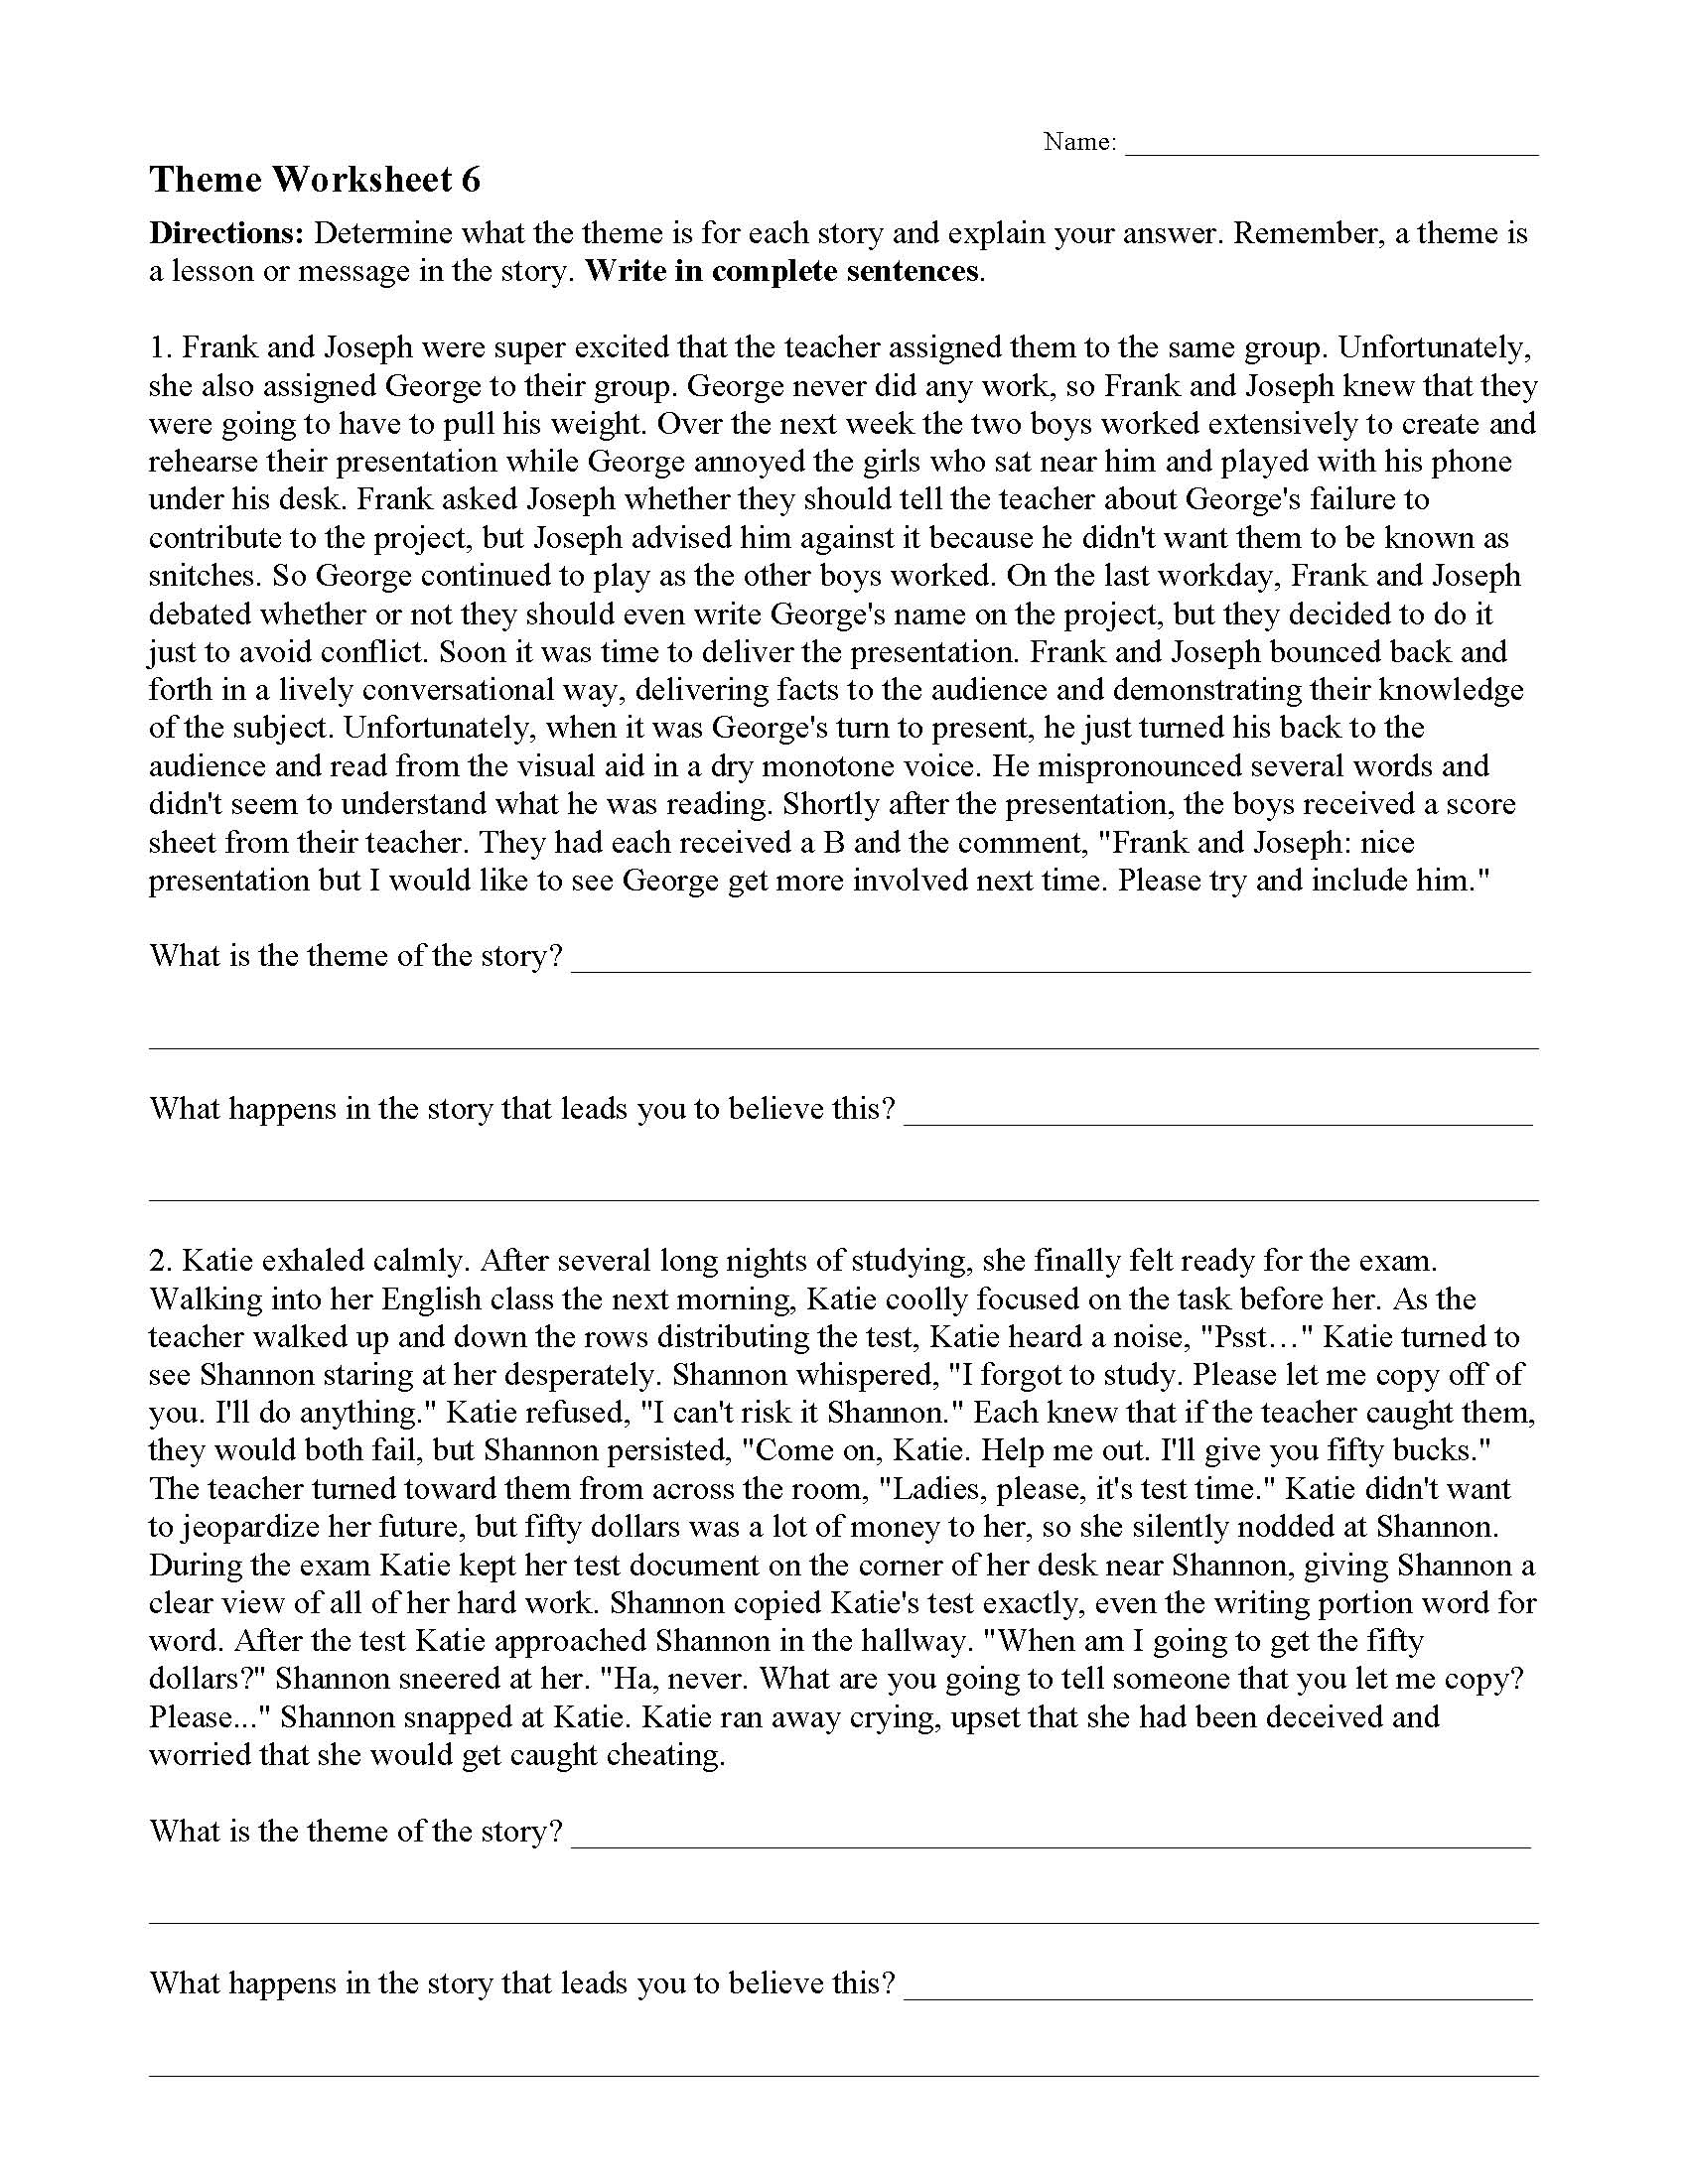 Theme Or Author S Message Worksheets Ereading Worksheets Find an unlimited supply of printable coordinate grid worksheets in both pdf and html formats where students either. ereading worksheets